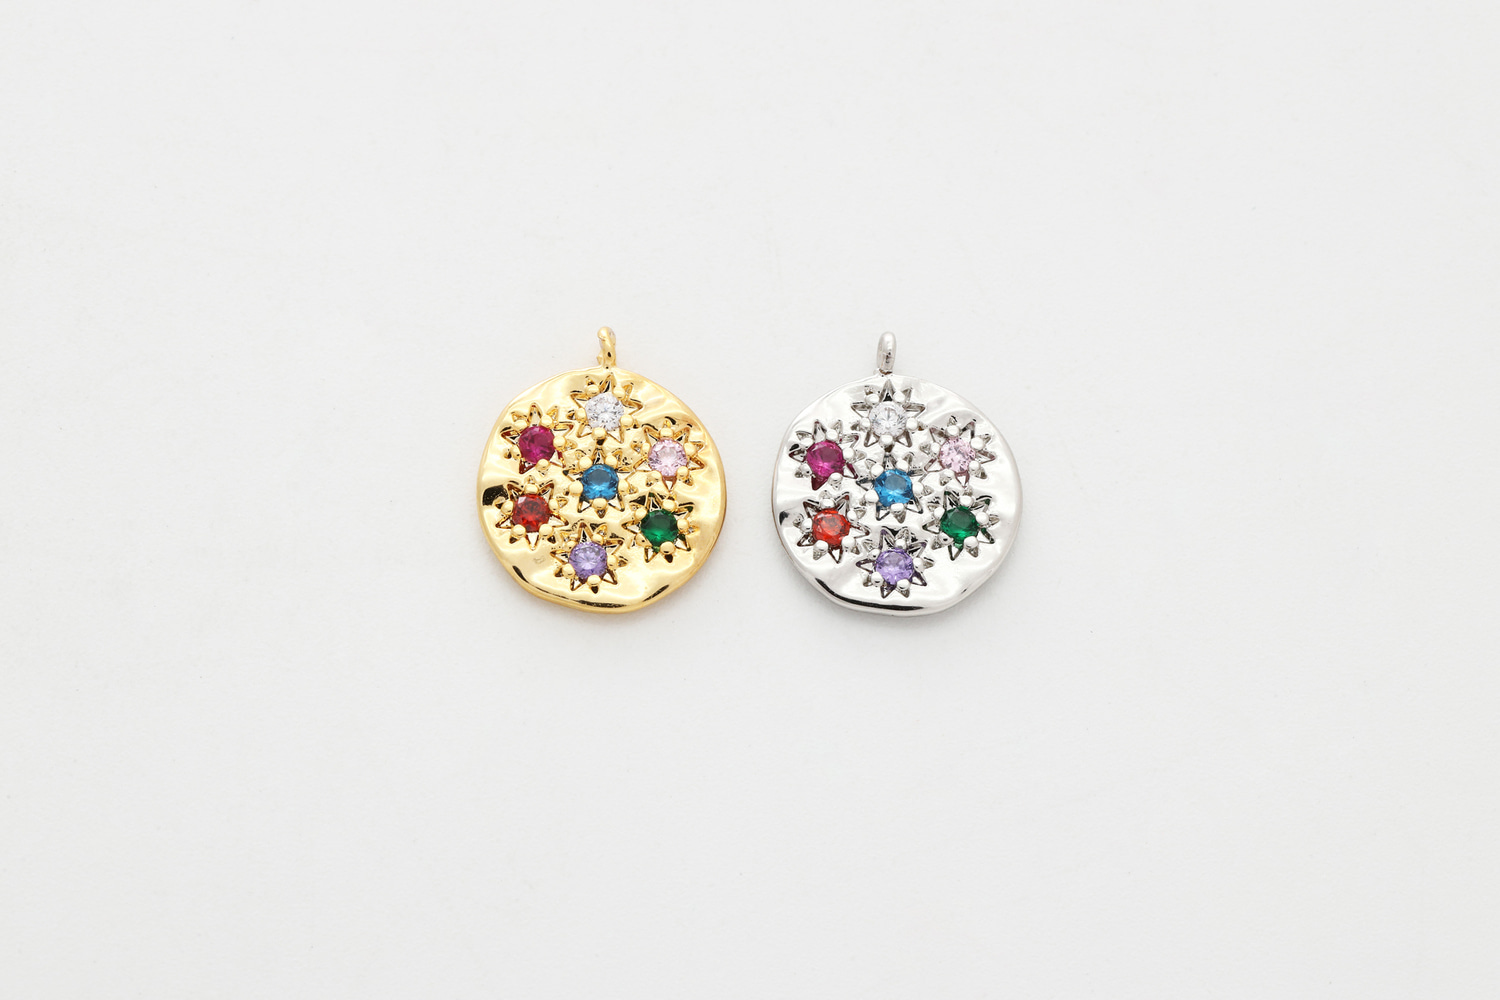 [Q11-VC2] Multi colored cubic round charm, CZ, Brass, Nickel free, Necklace makings, Jewelry supplies, Unique pendant, 1 piece (Q11-P9, Q11-P9R)